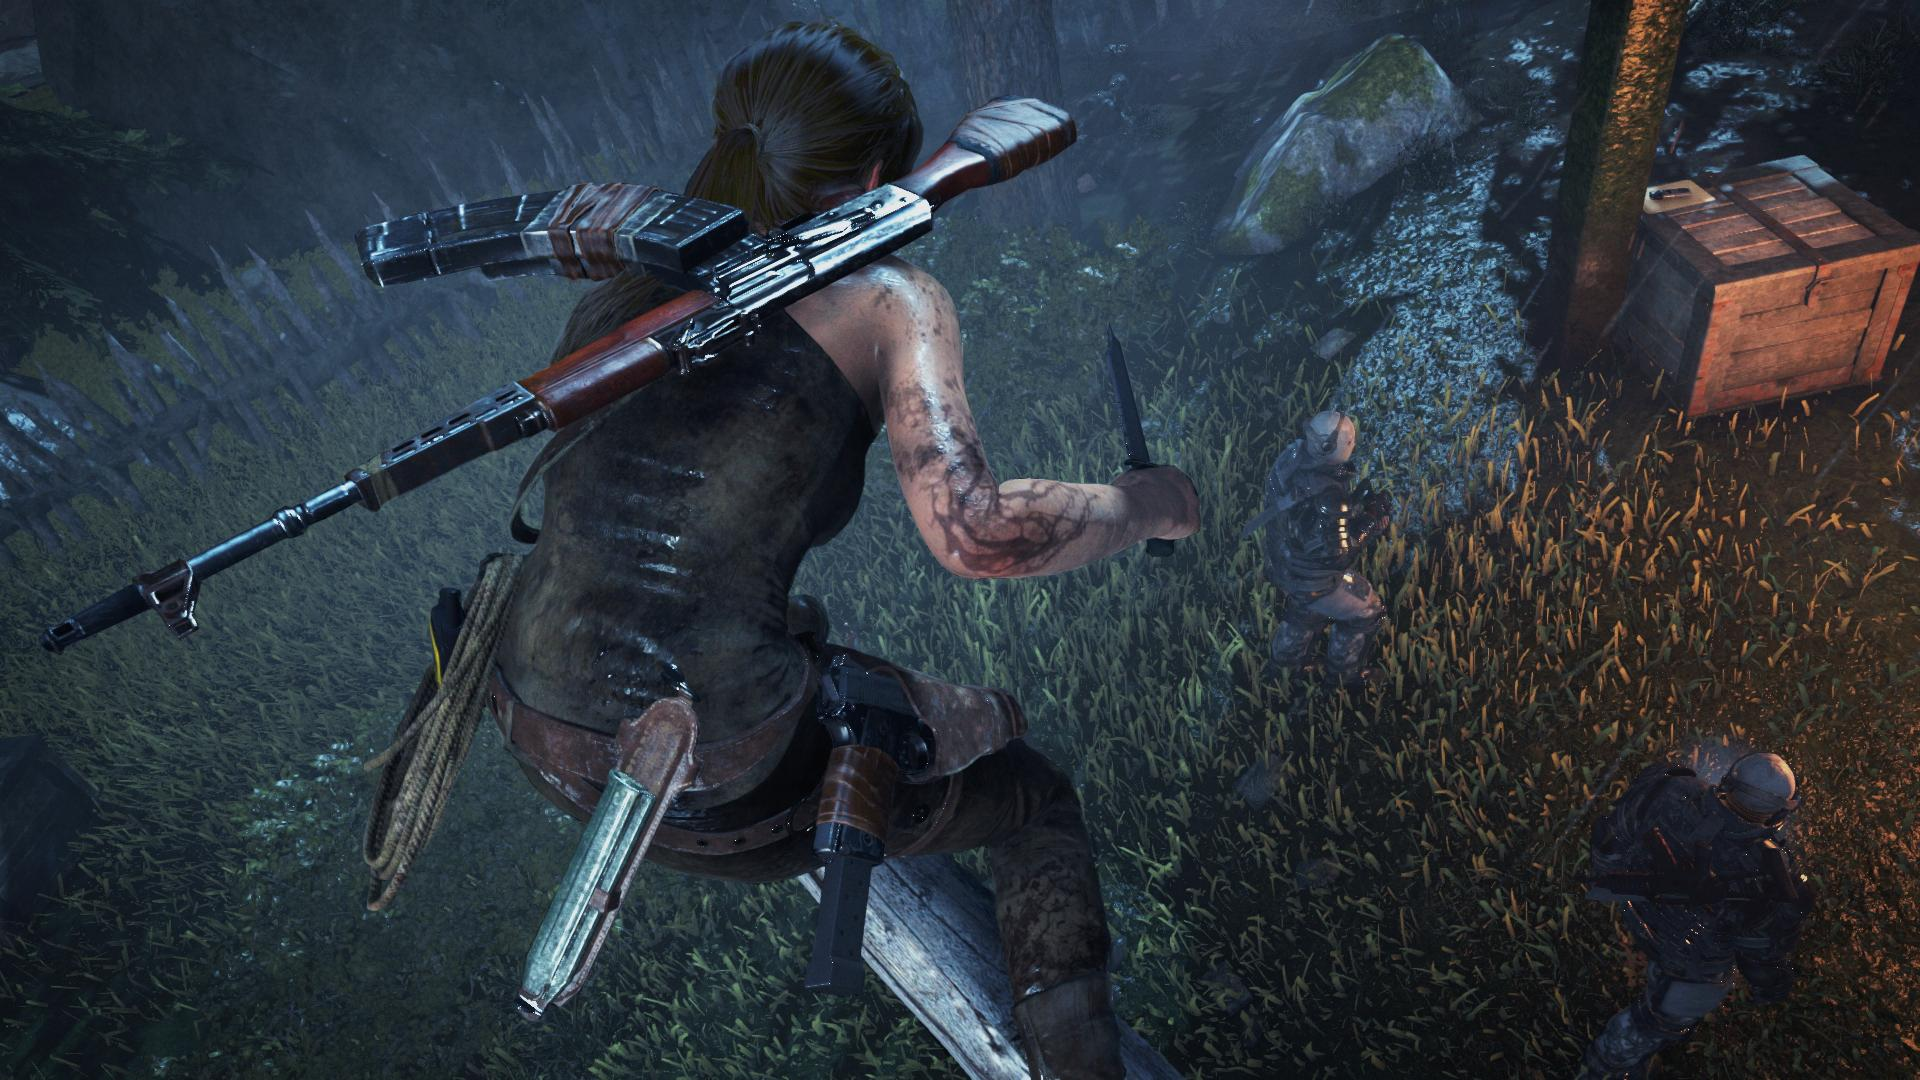 Rise Of The Tomb Raider Hits Ps4 This Fall The Escapist